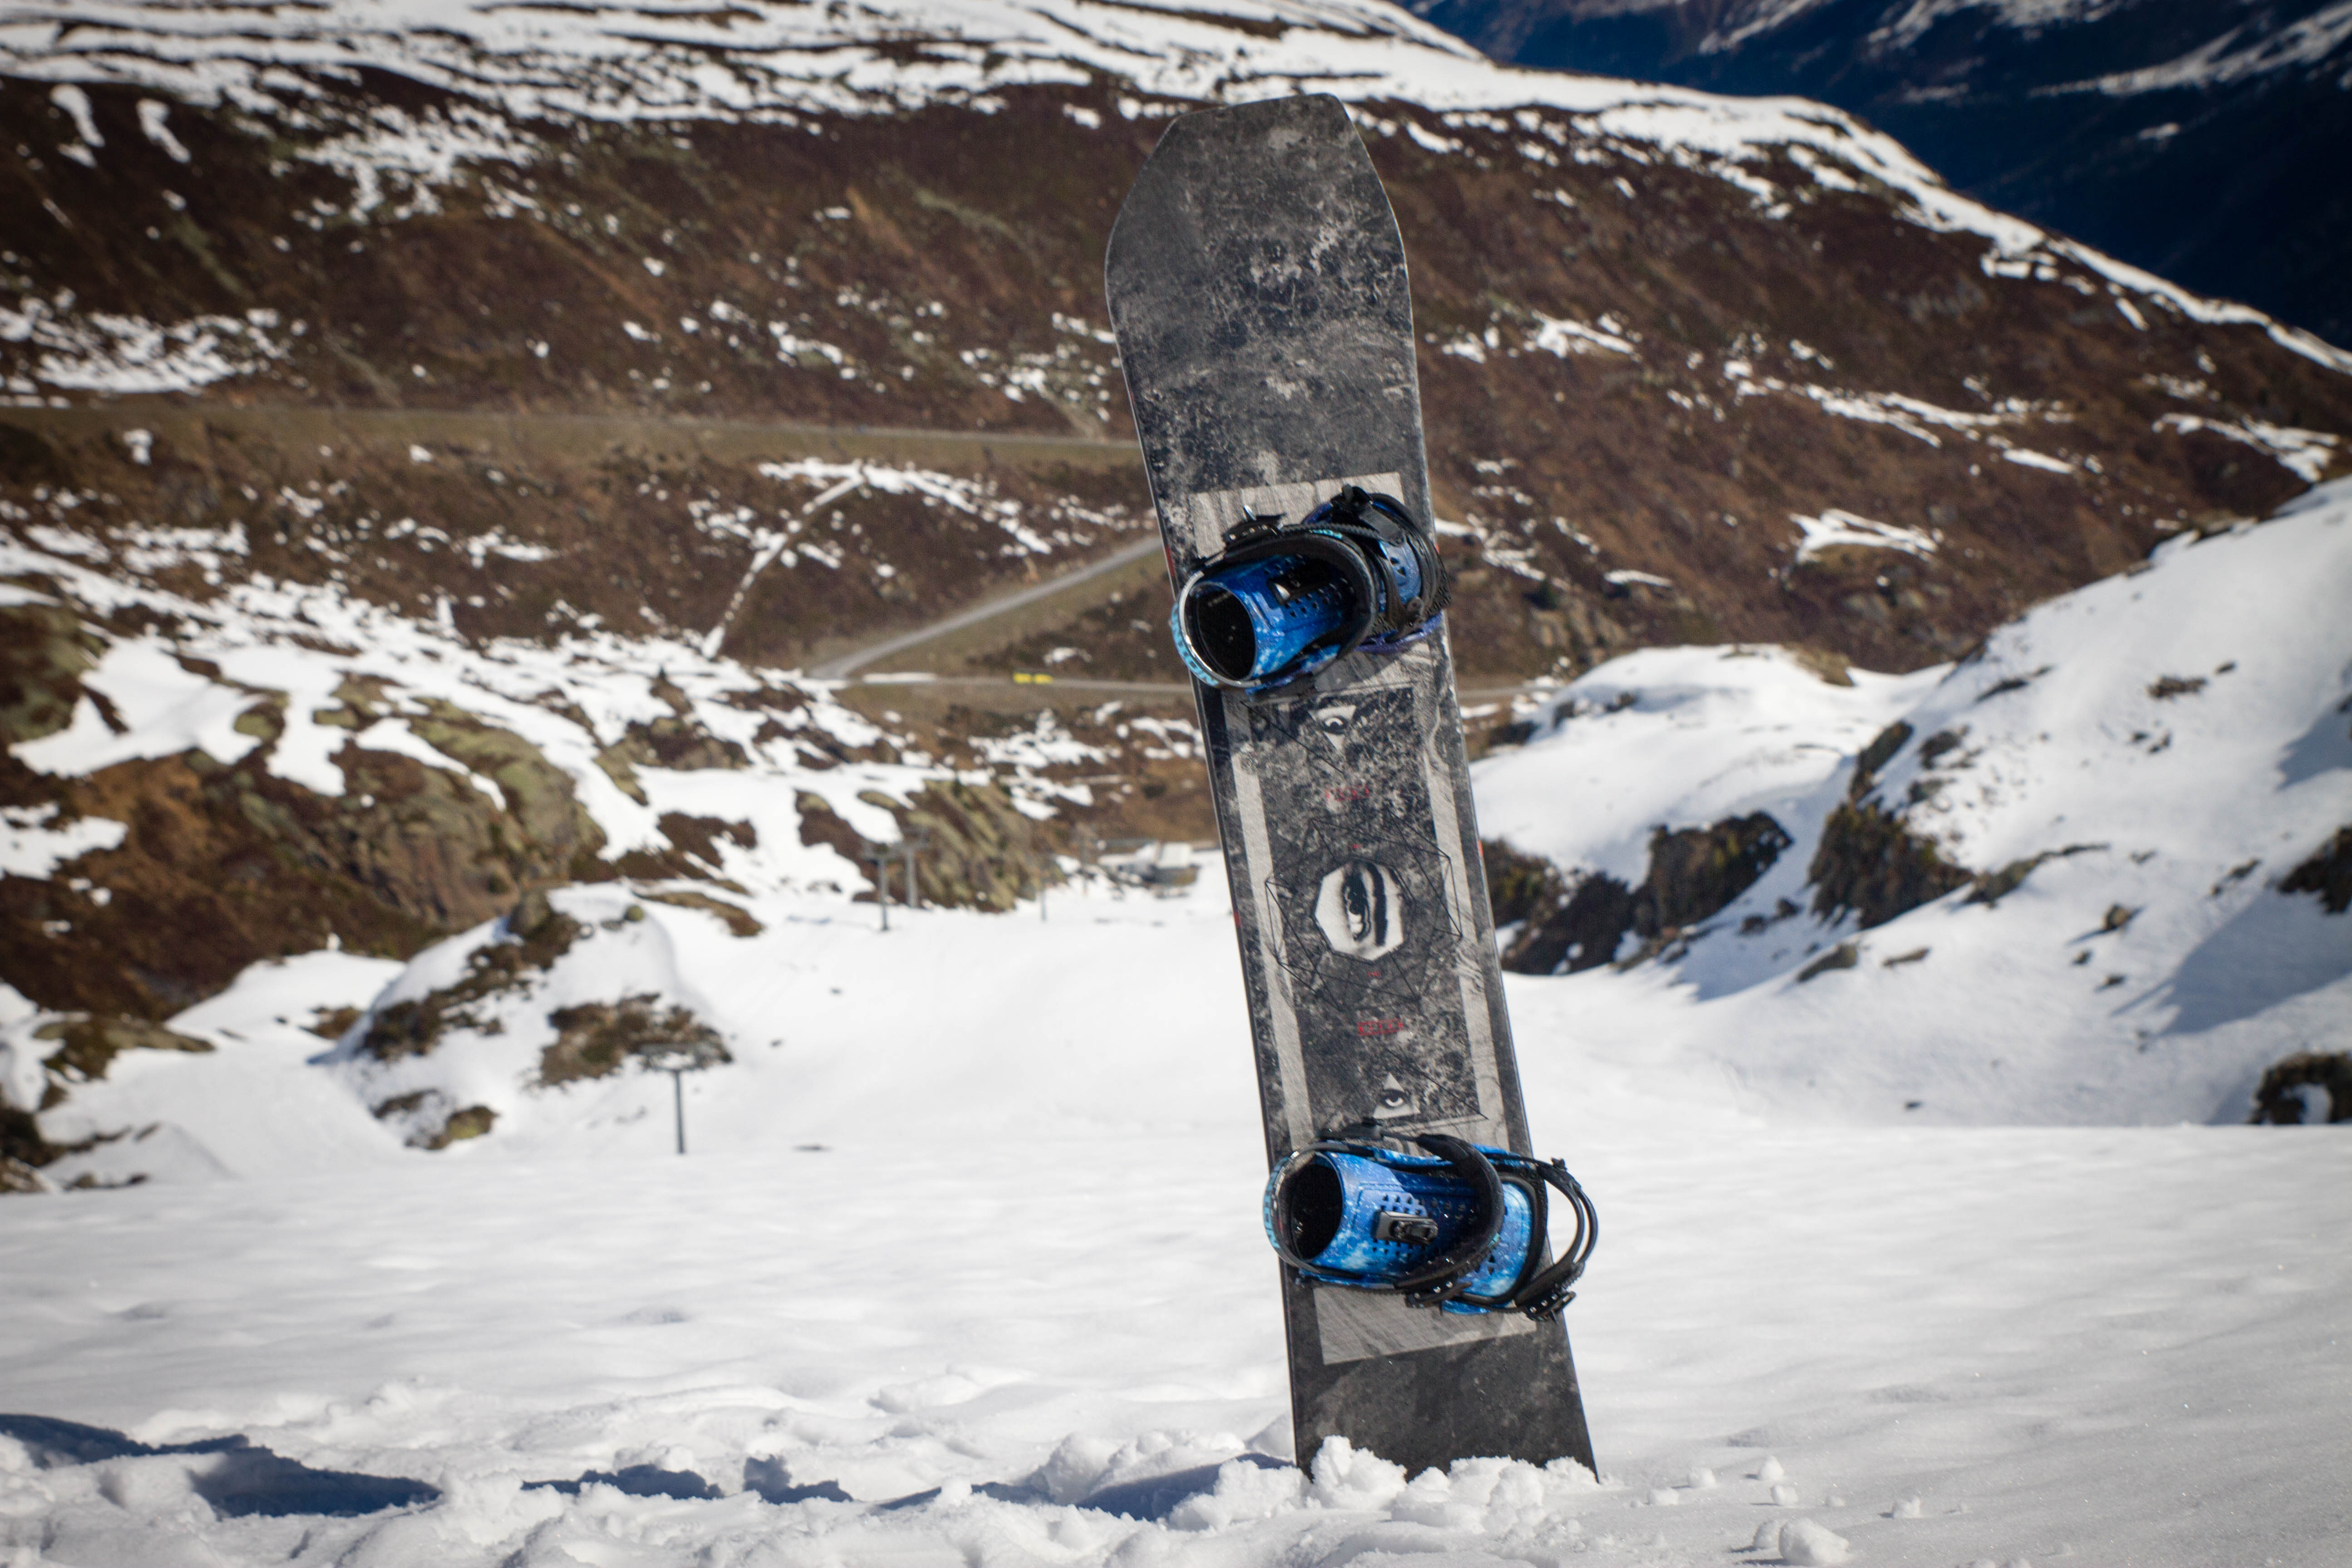 The Ride Helix Snowboard Review 2015/2016 | EpicTV Gear Geek